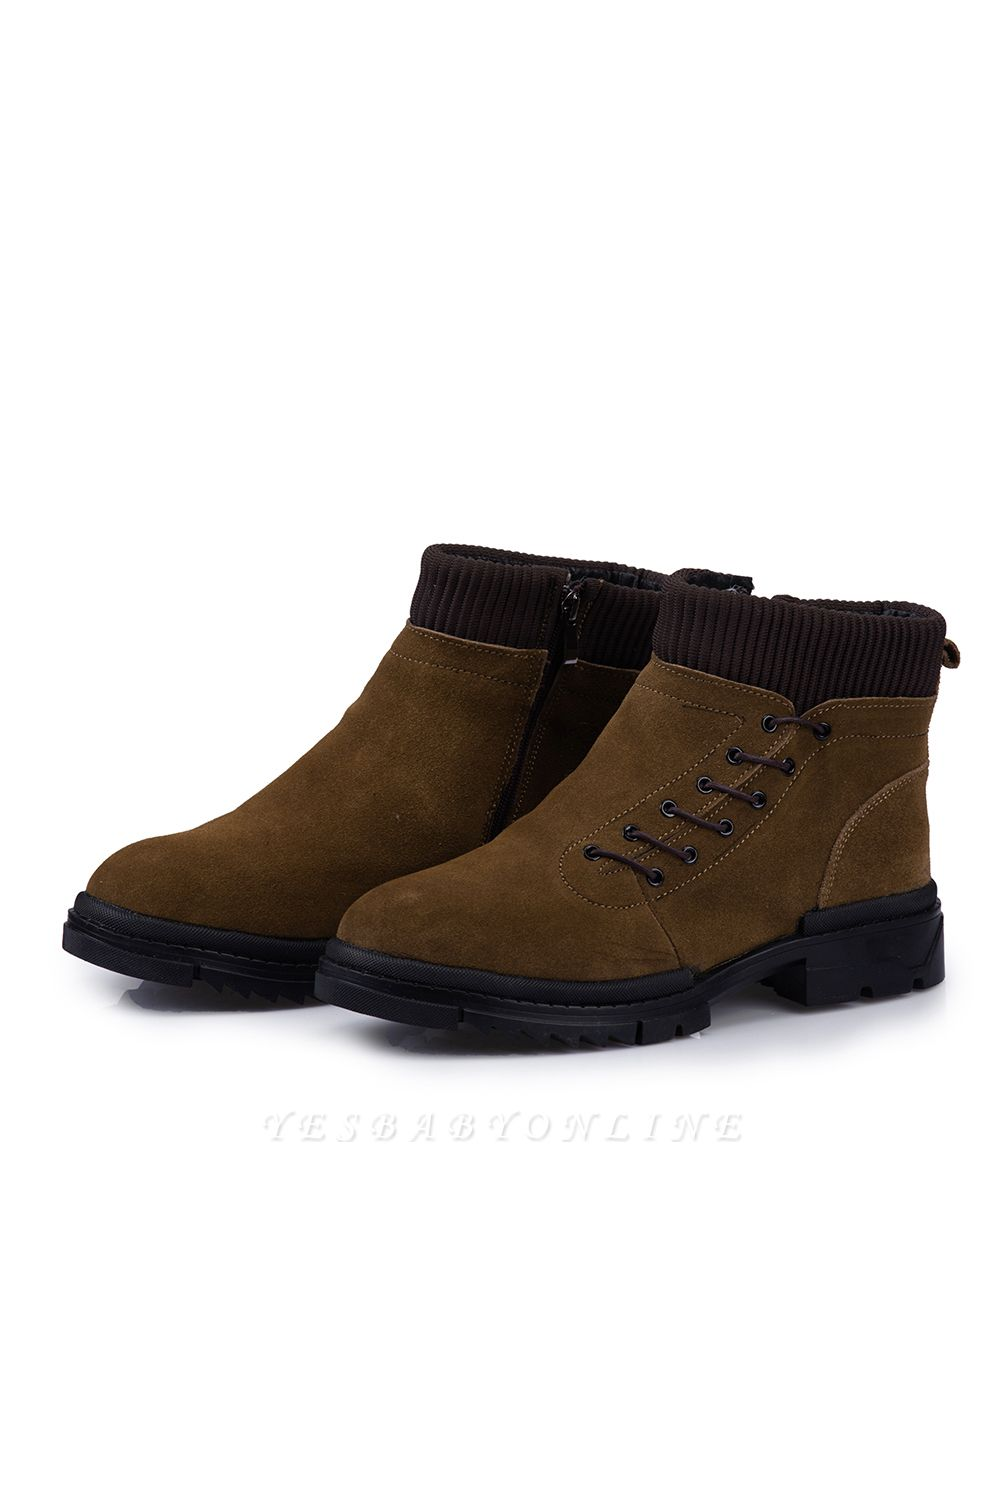 Ankle Boots Suede Cotton Warm Fur Lined Anti-Slip Outdoor Booties On Sale